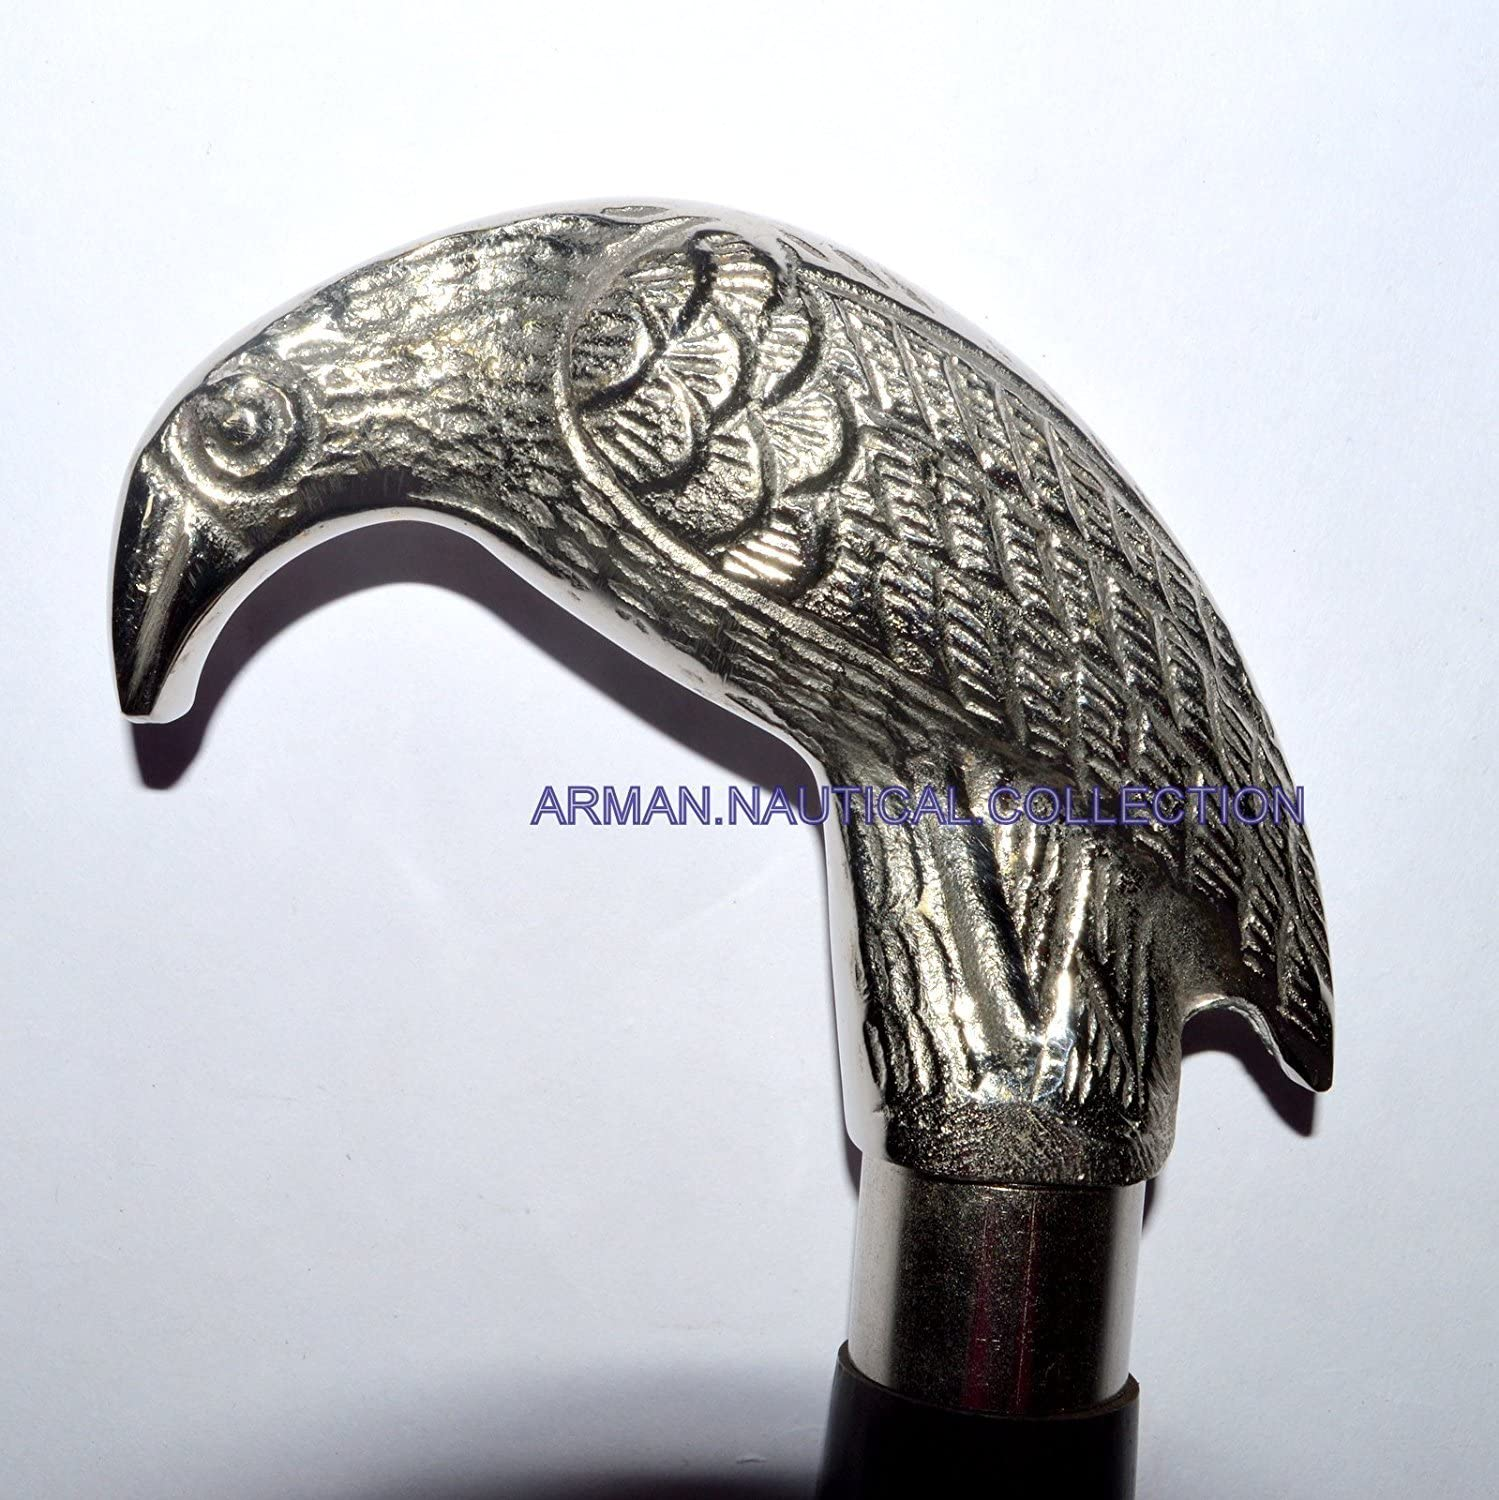 Silver Max 79% OFF Nickel Plated Raven Walking Stick Sty Max 88% OFF Carved Vintage Head